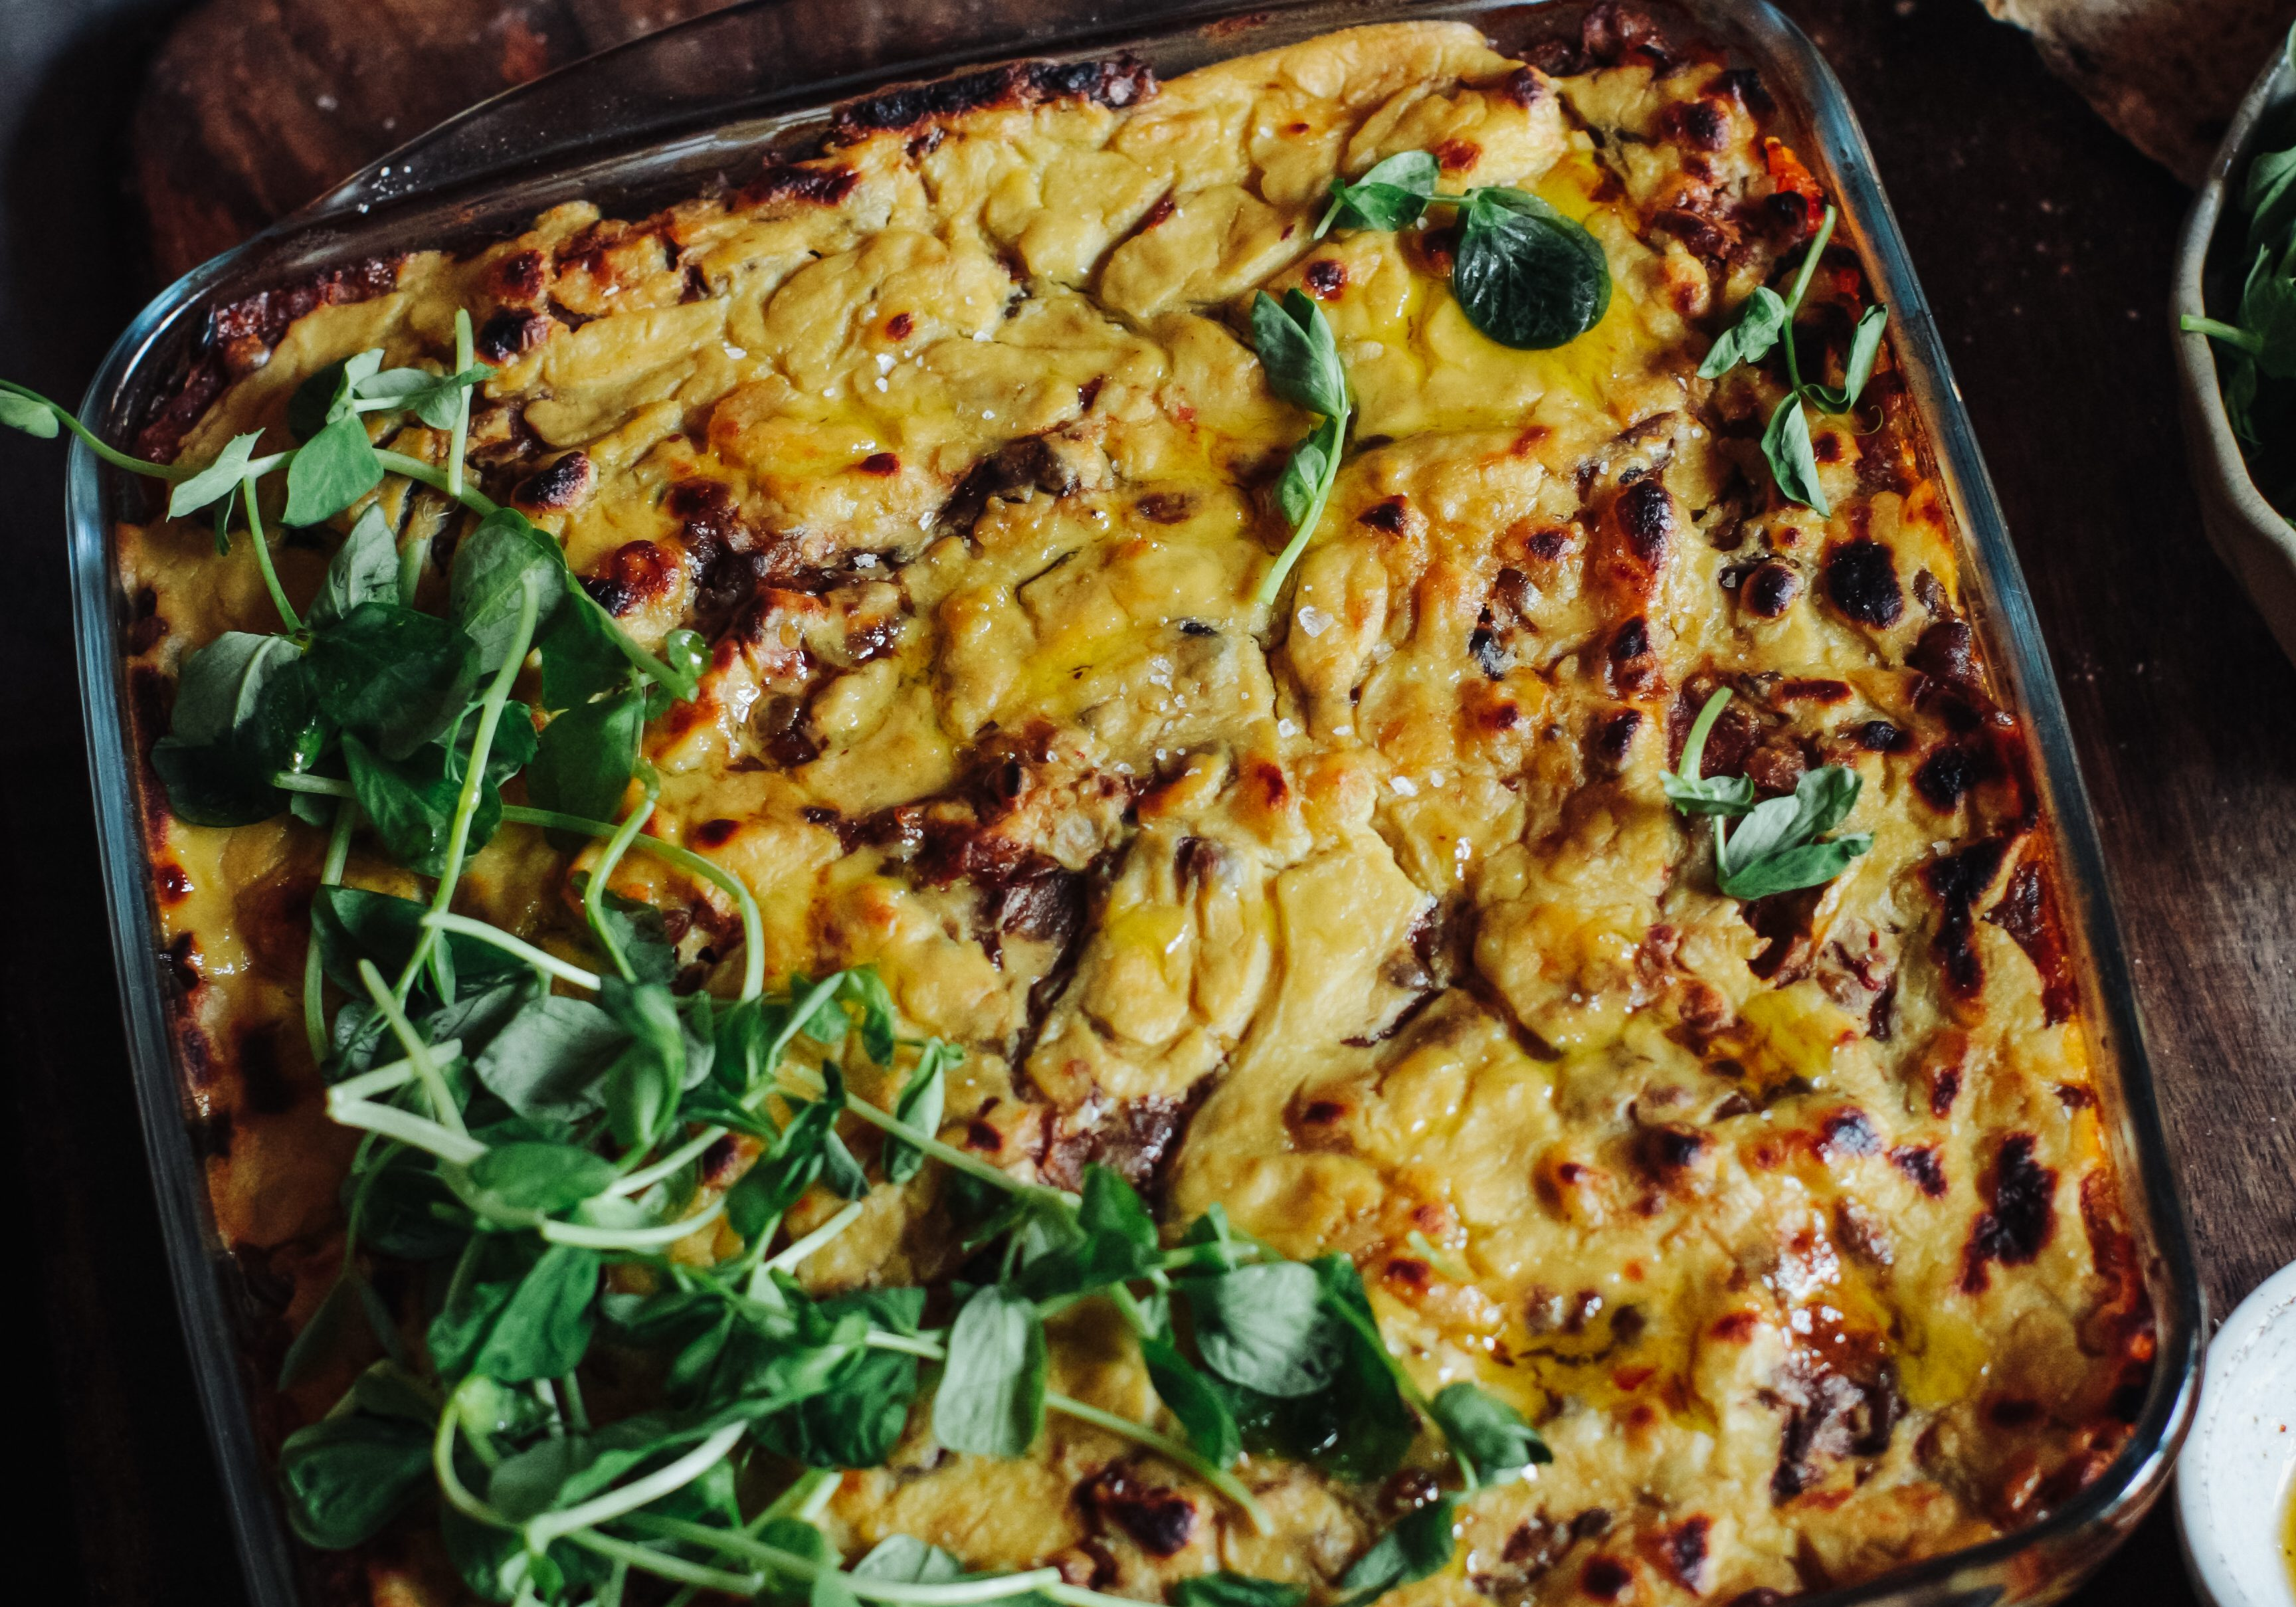 Winter Layered Lentil and Squash Bake